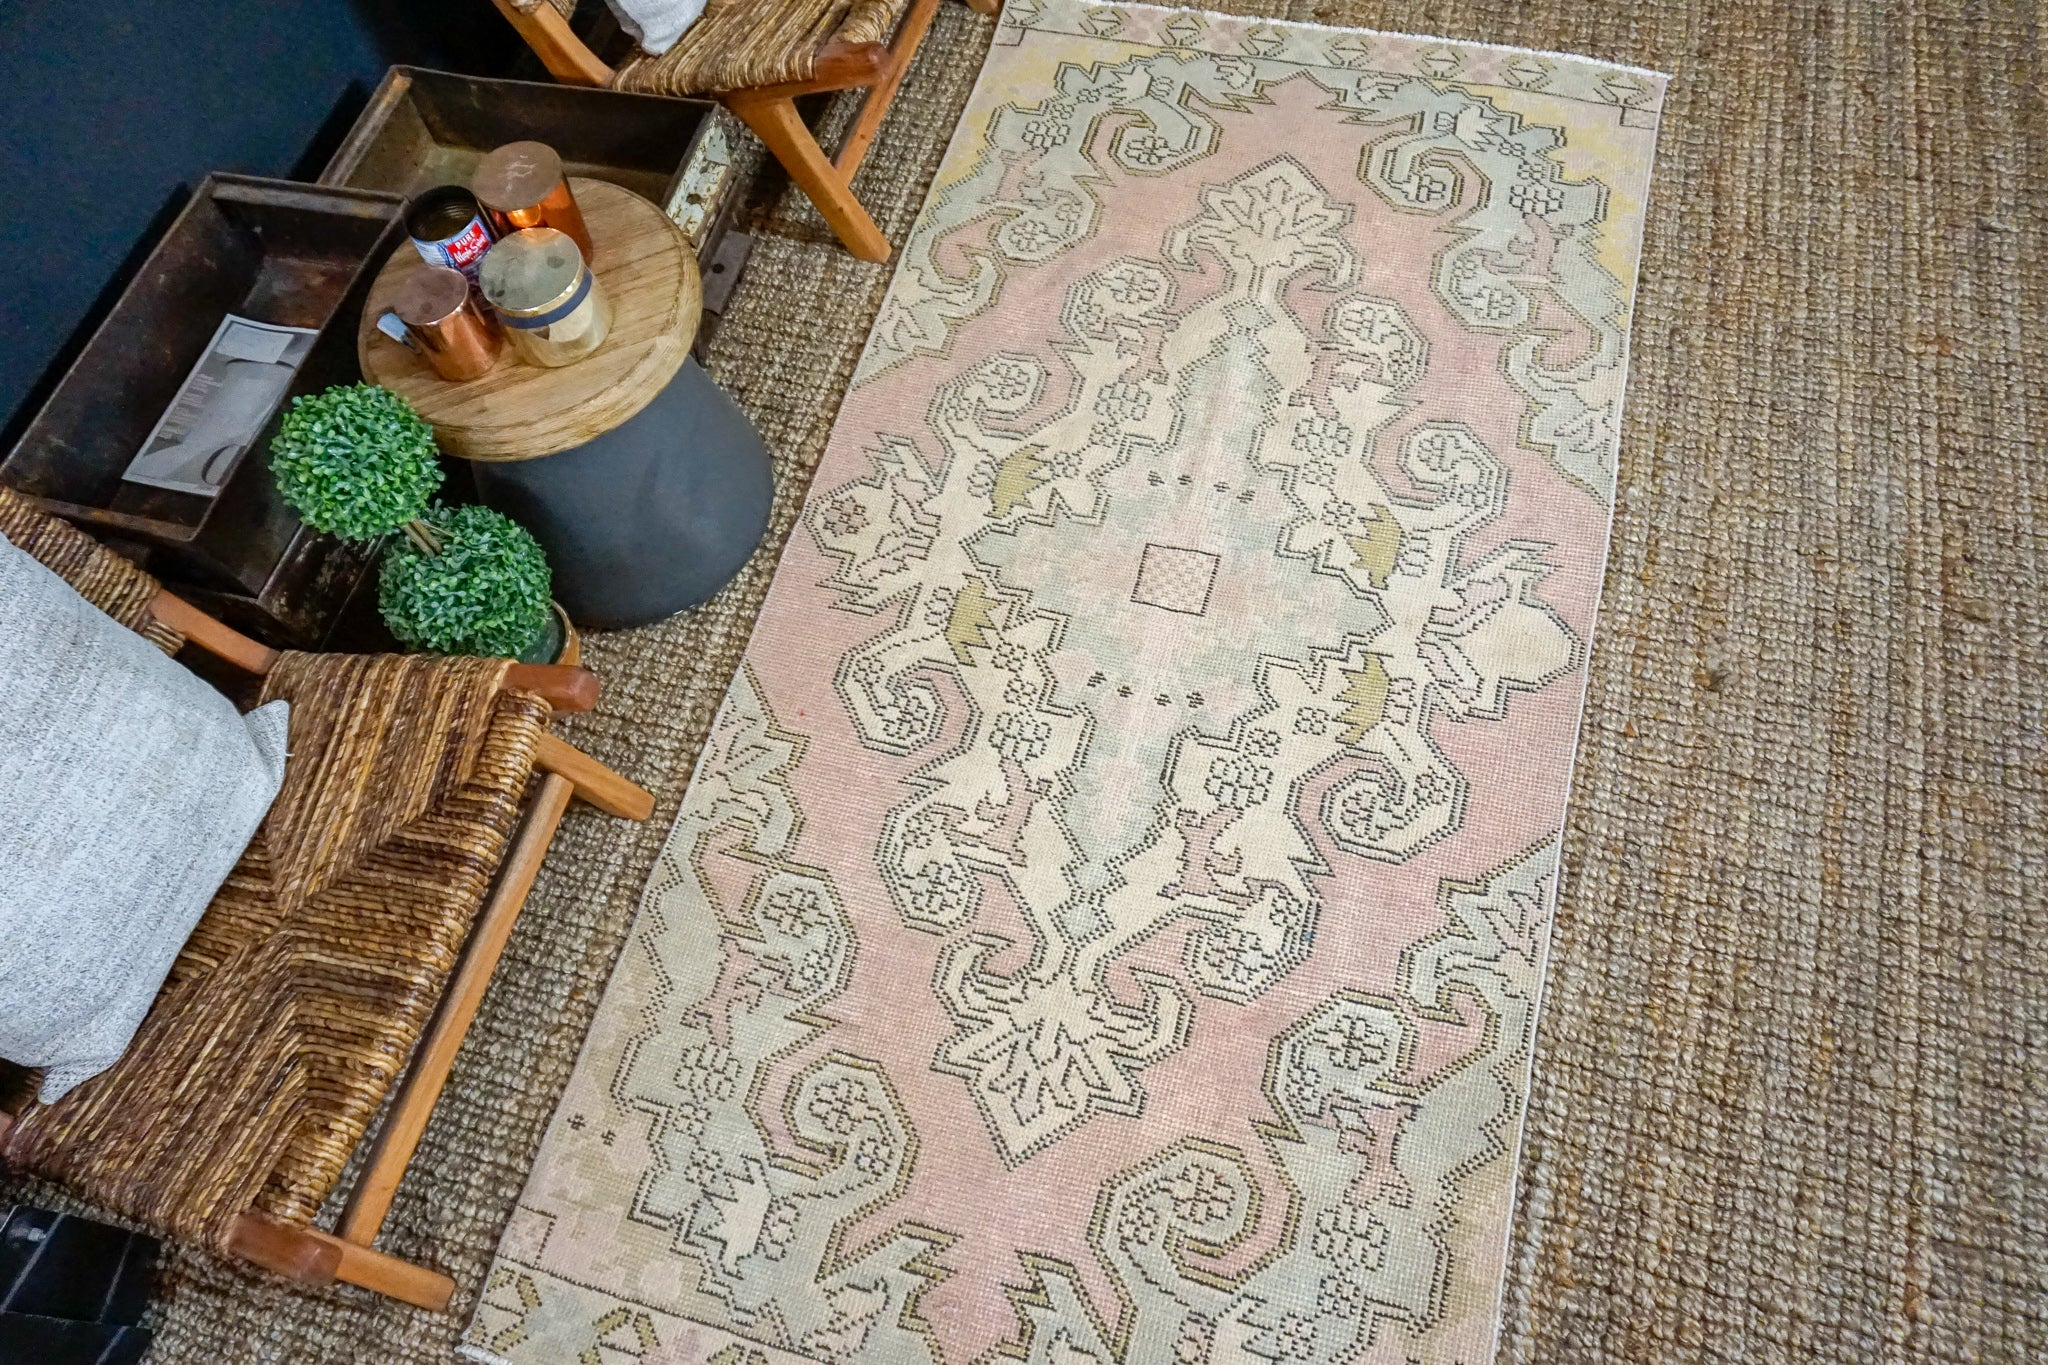 3'7 x 7'6 Oushak Rug Muted Pink, Vanilla and Blue Vintage Turkish Carpet